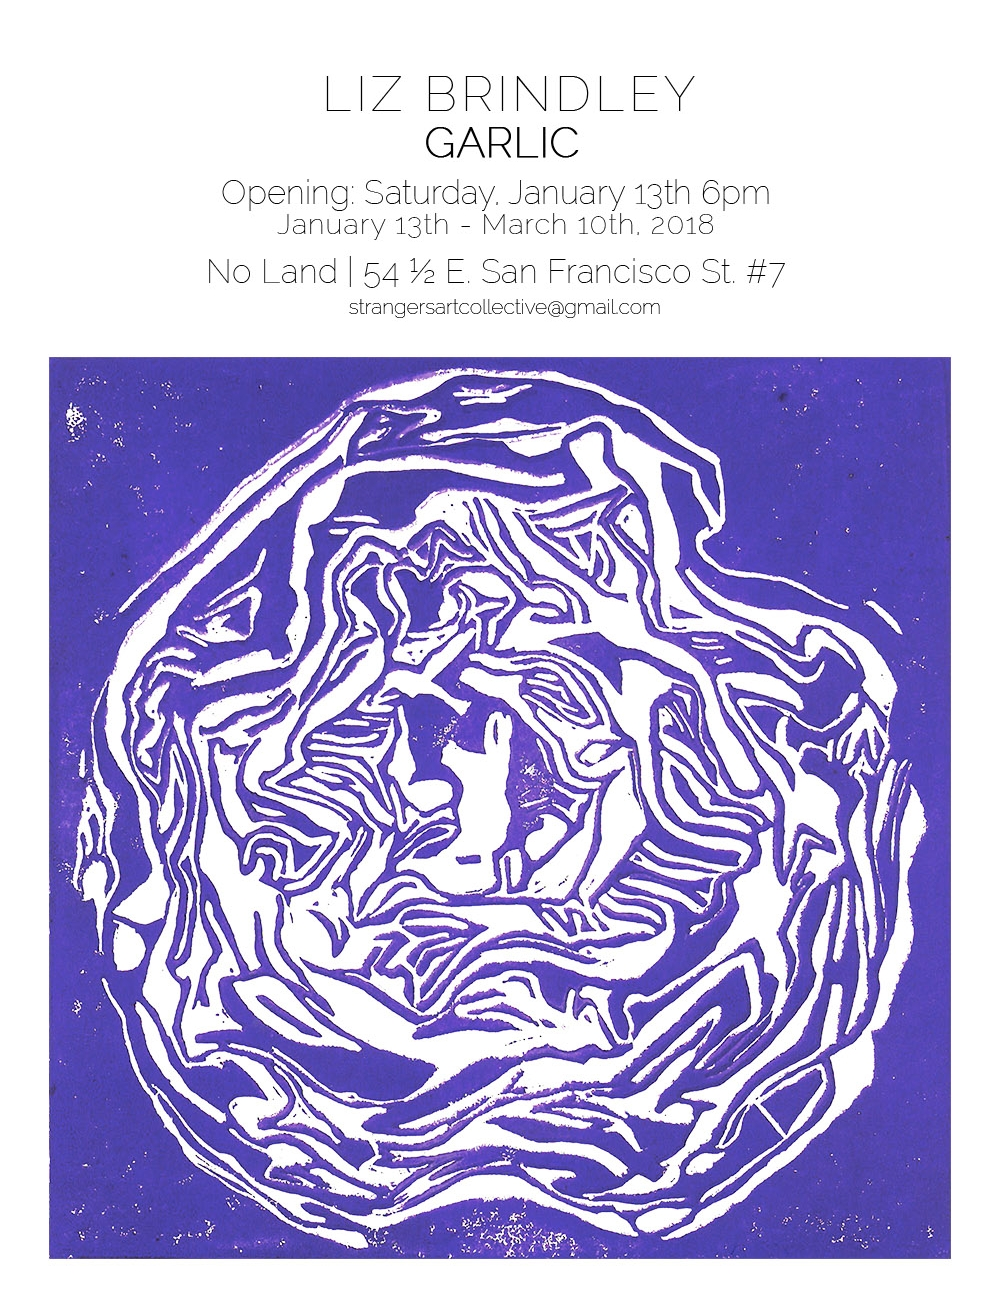 Liz Brindley-Garlic Residency Poster-No Land Gallery.jpg